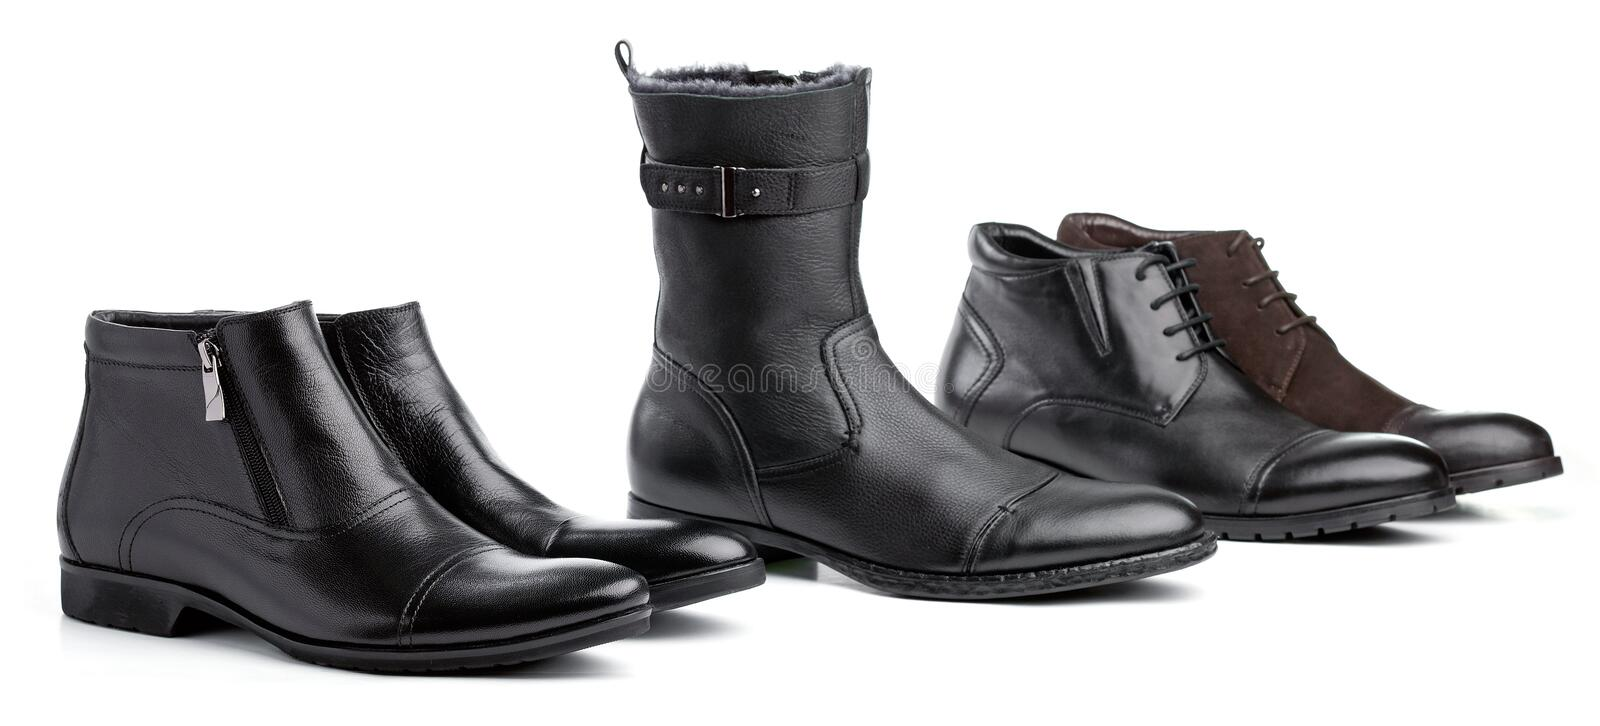 Male boots over white, all boots different royalty free stock image